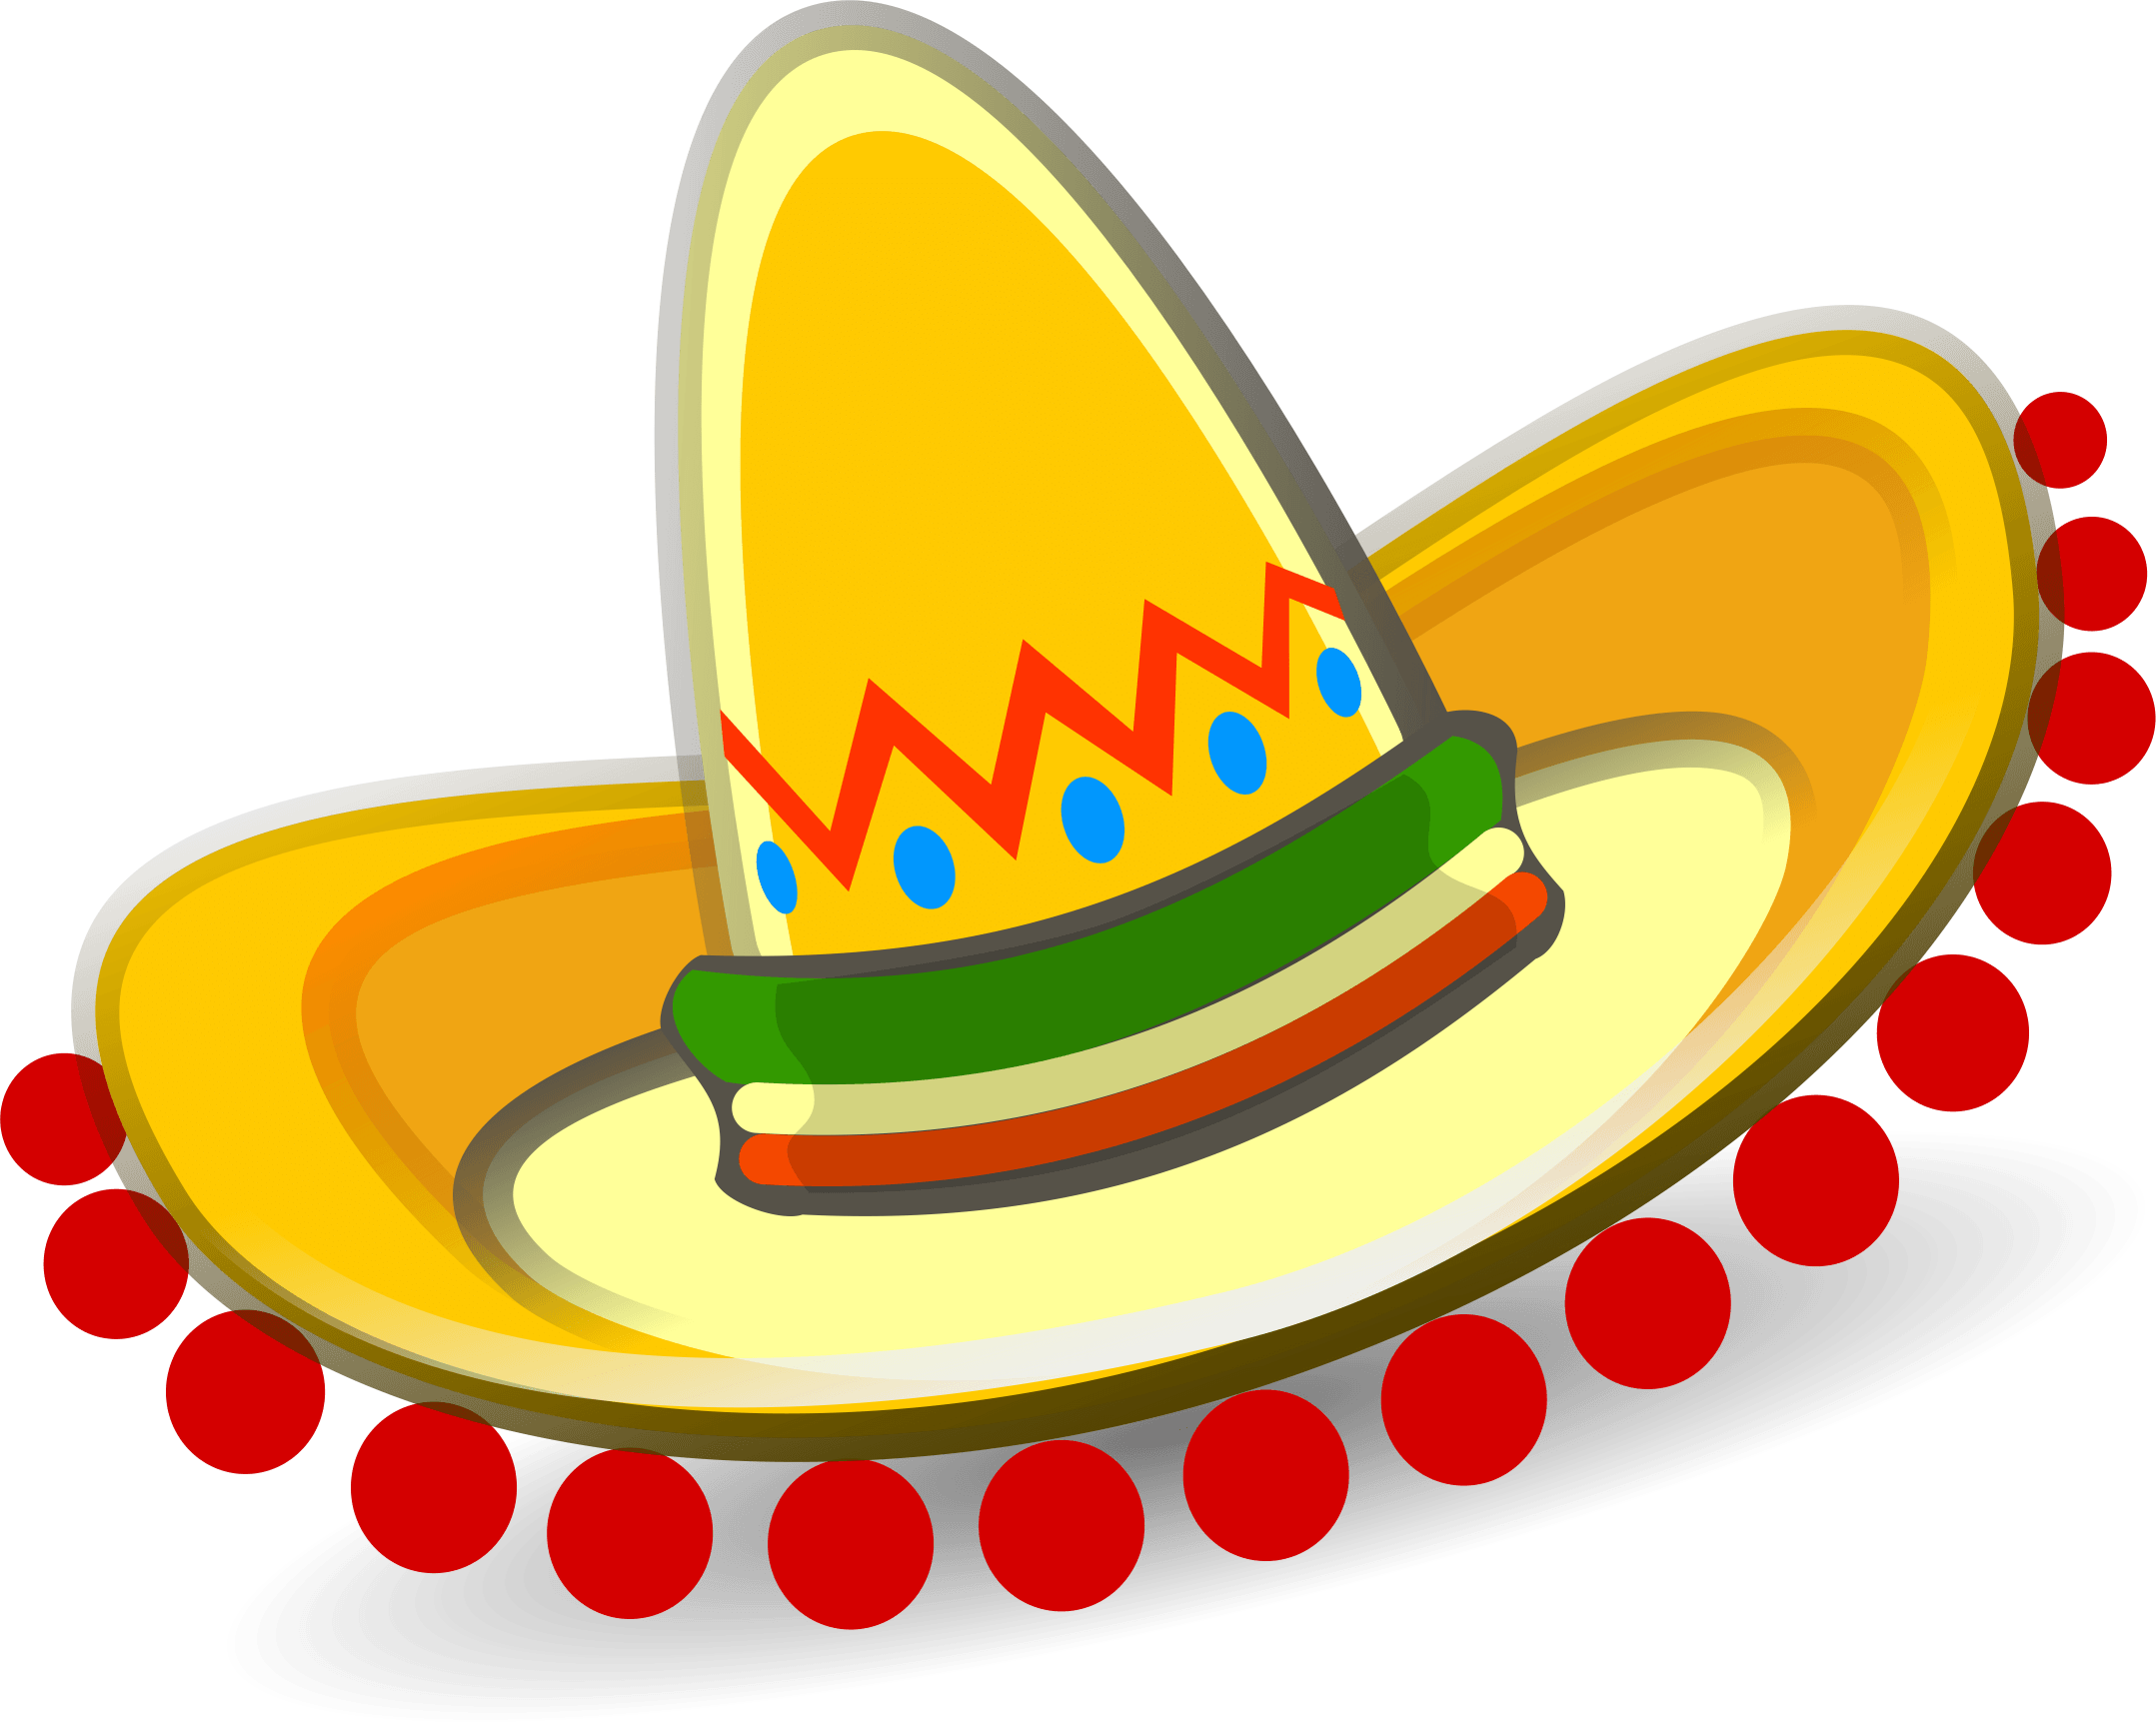 Awesome sombrero clipart picture free download Sombrero Cliparts - Cliparts Zone picture free download